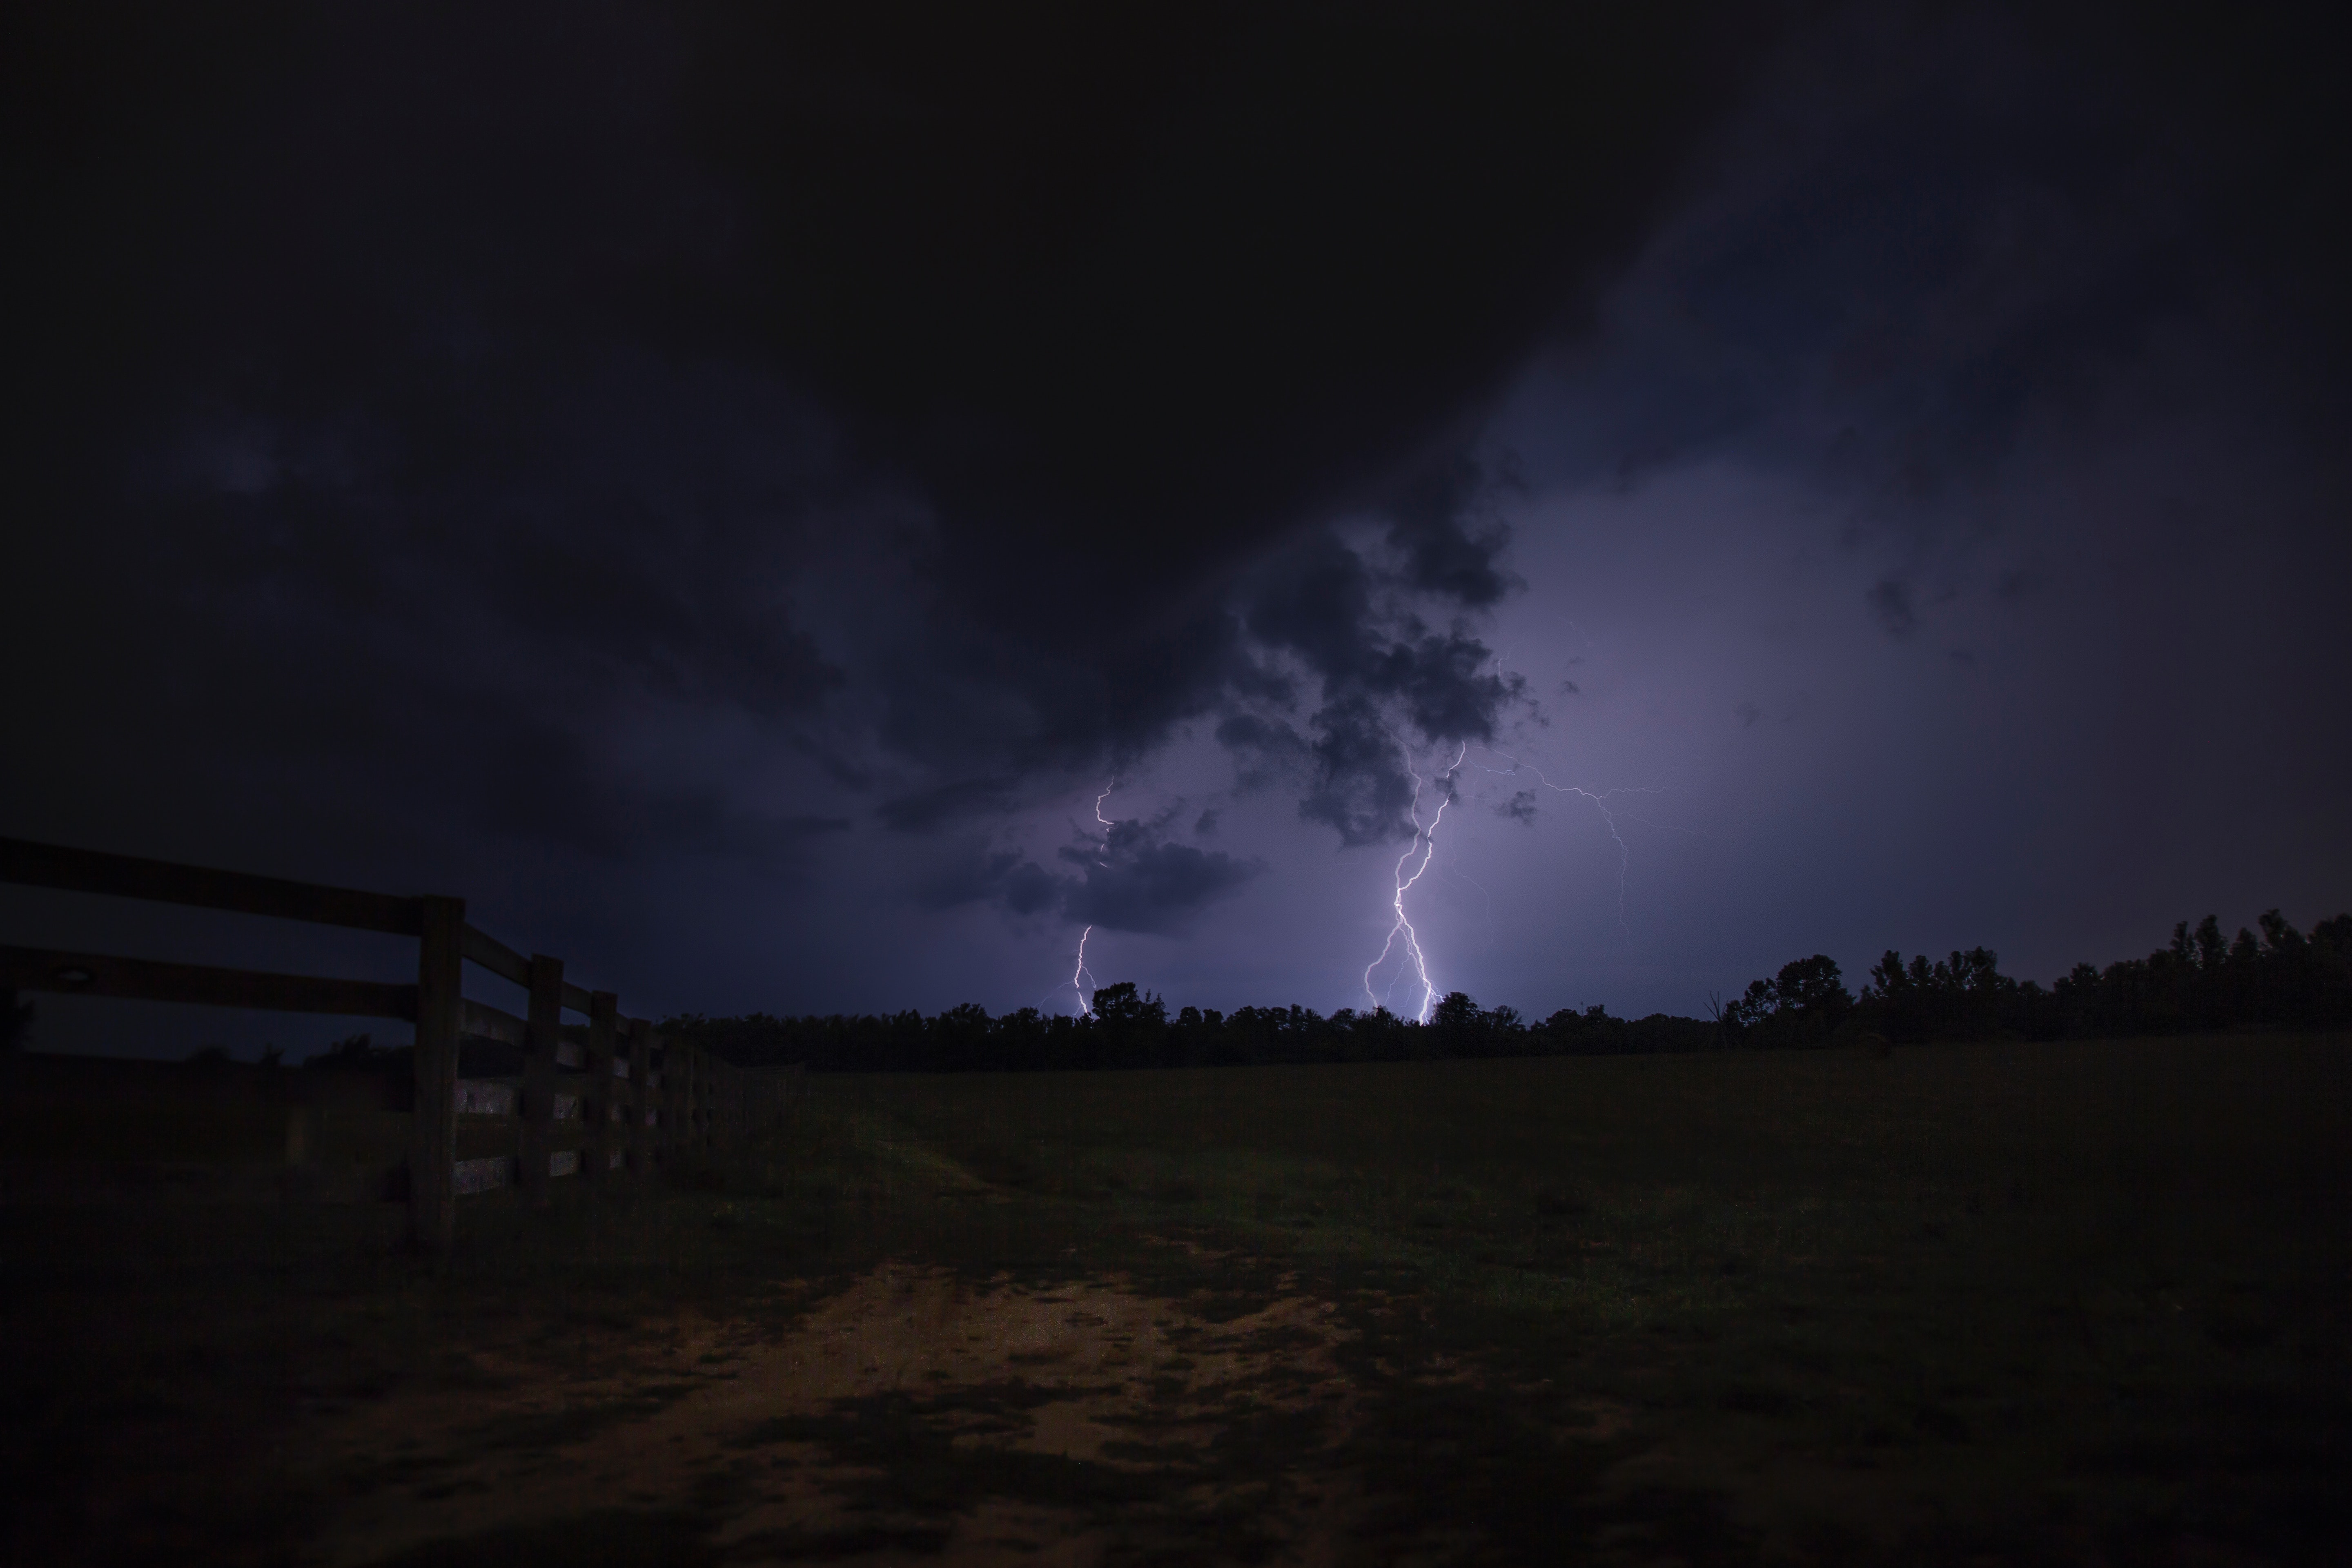 Lightning in the distance